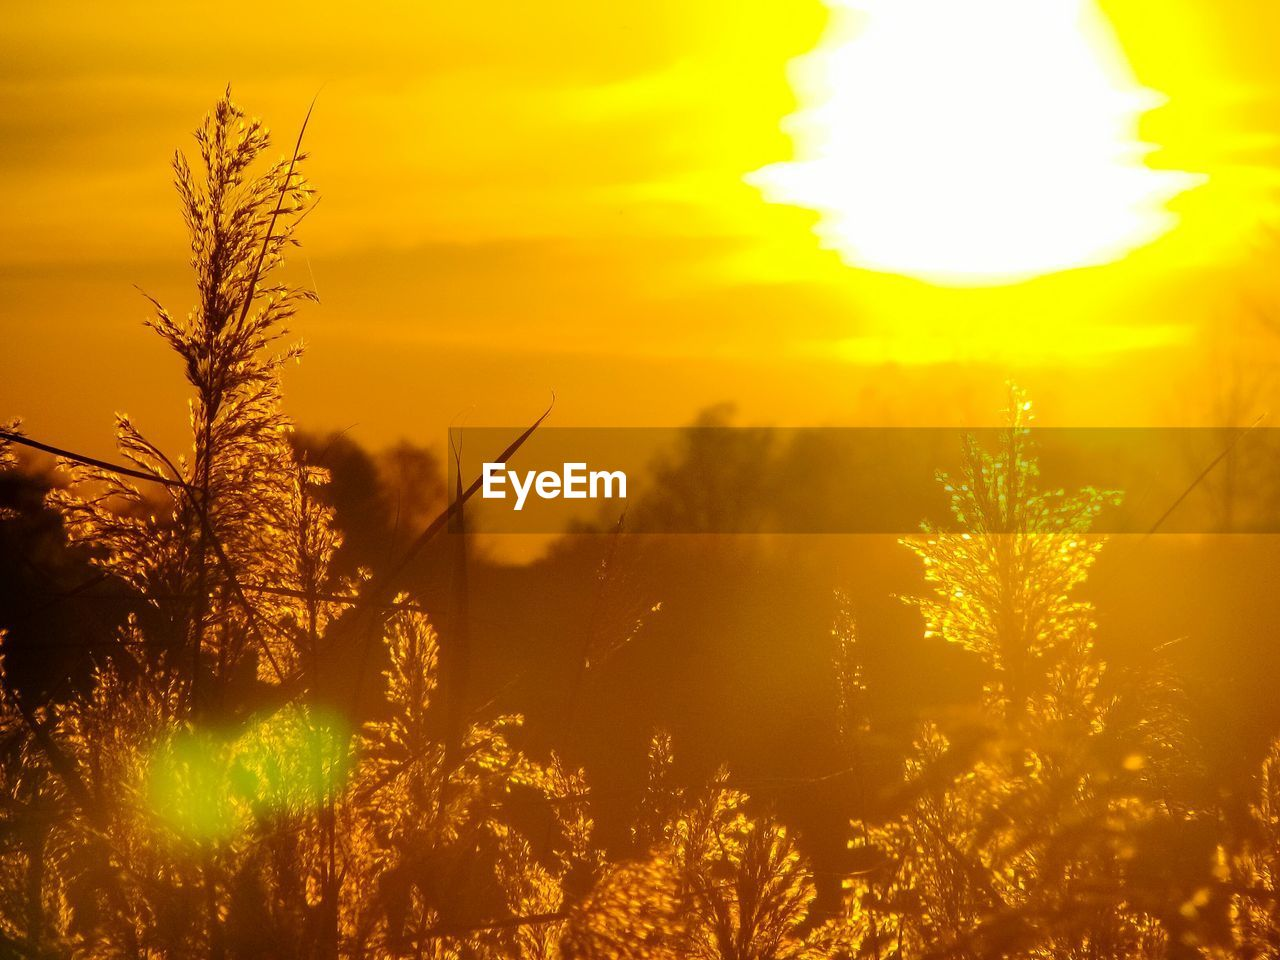 sunset, nature, growth, beauty in nature, plant, outdoors, sun, yellow, no people, flower, sky, close-up, tree, freshness, day